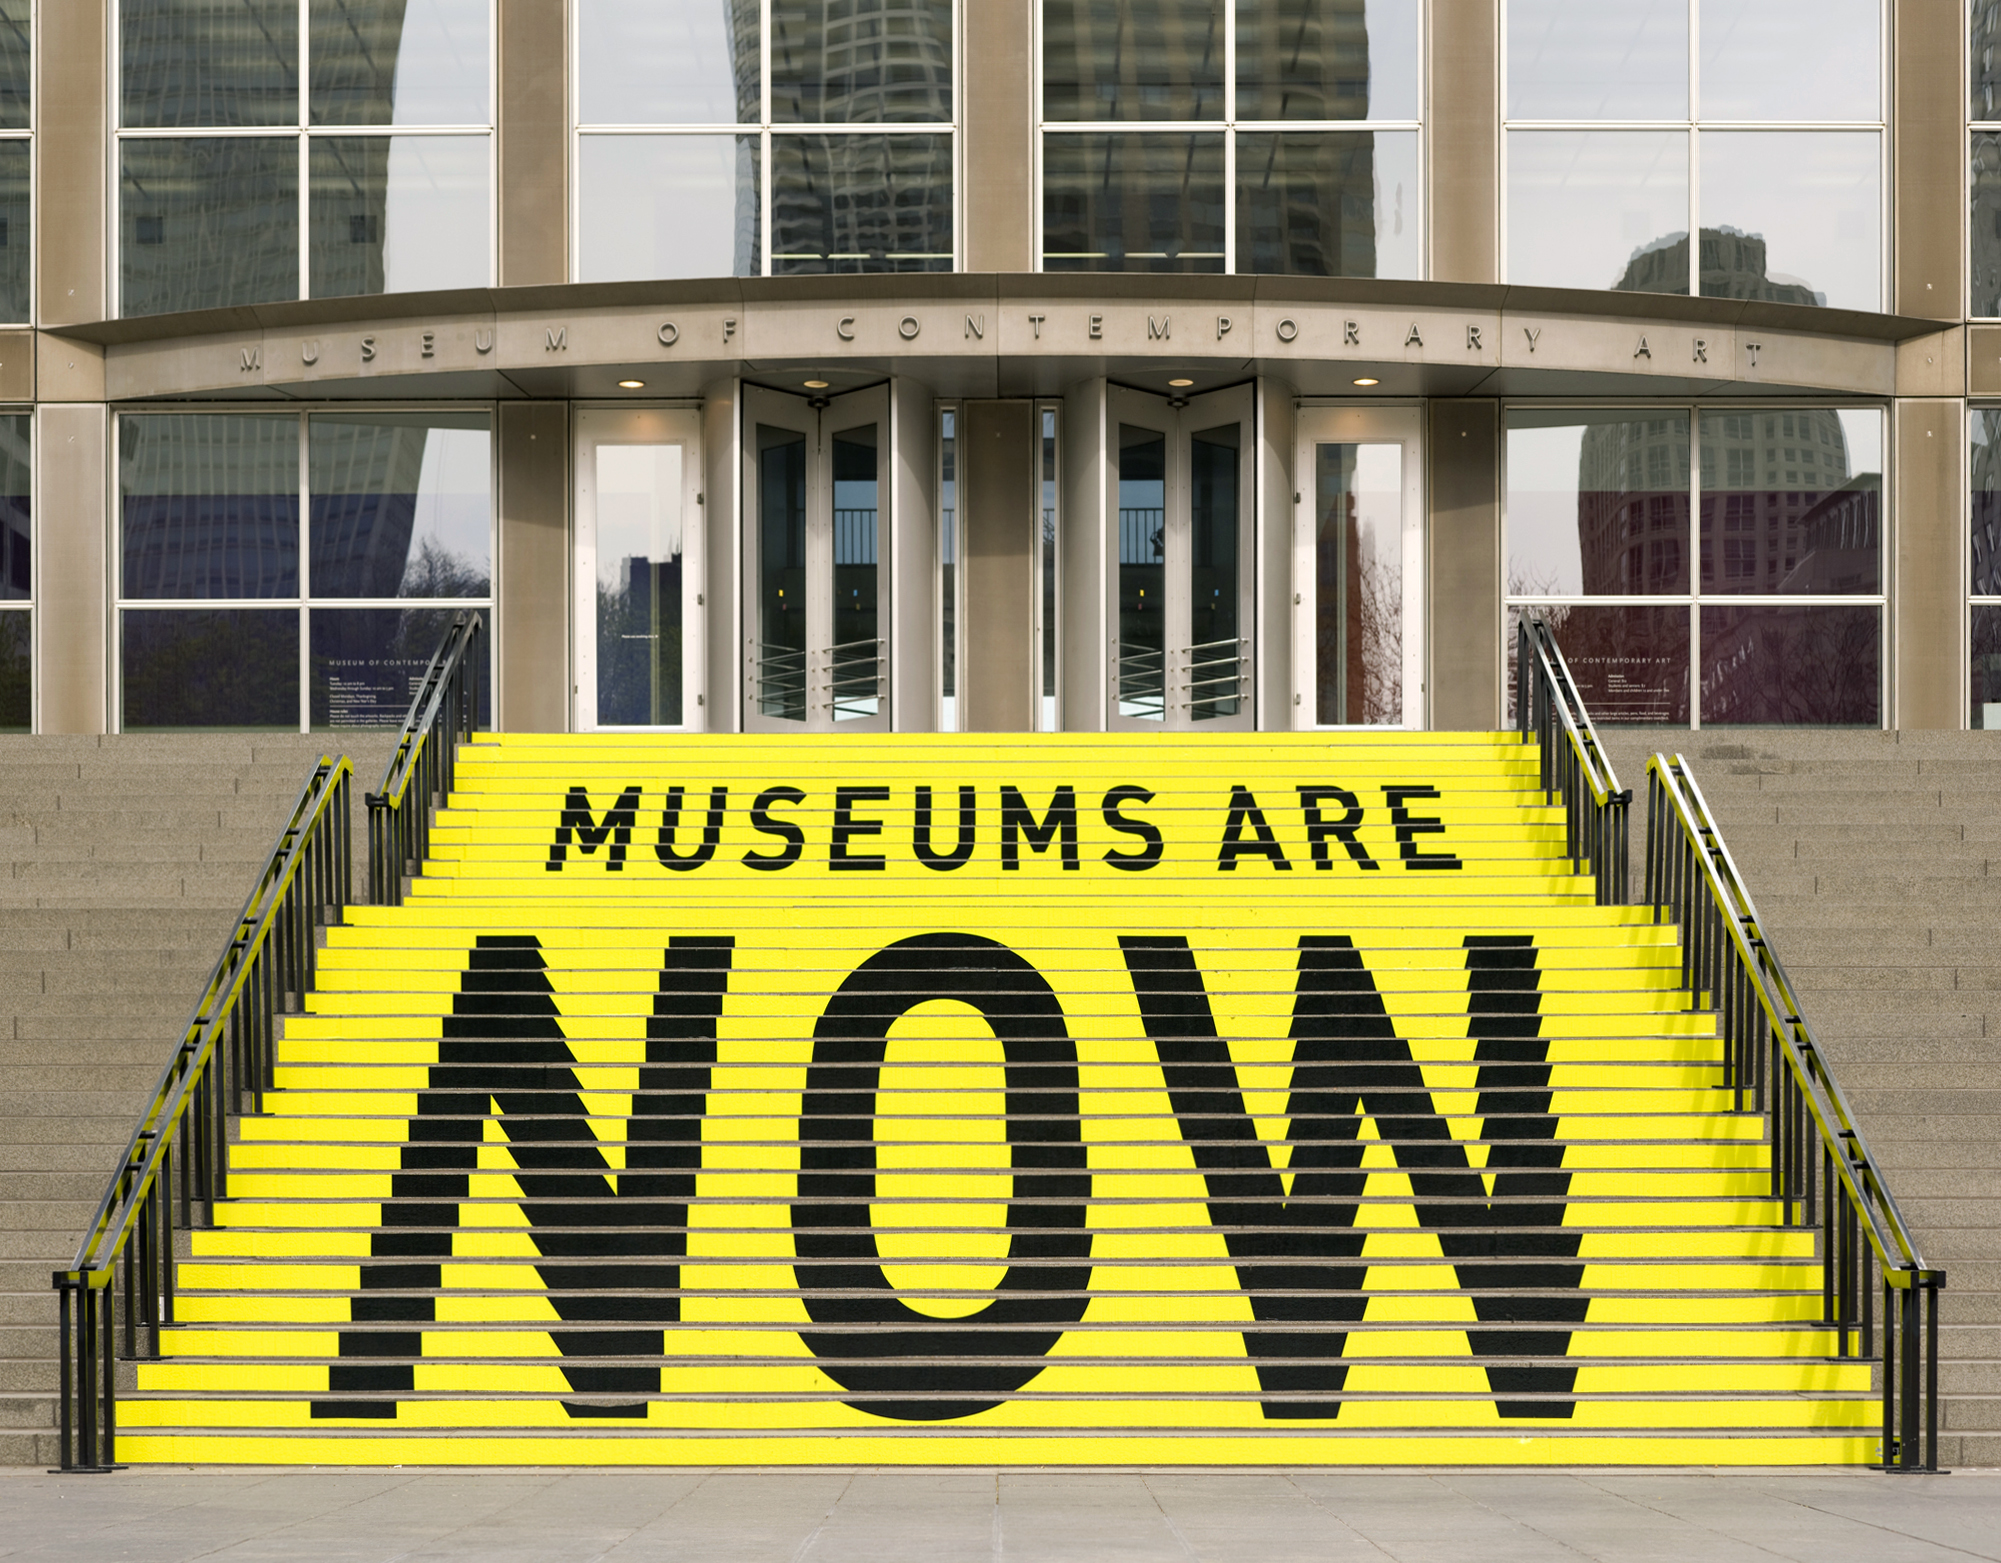 Thousands of US Museums Could Close Forever as the Financial Effects of Lockdown Turn Existential, a New Report Finds